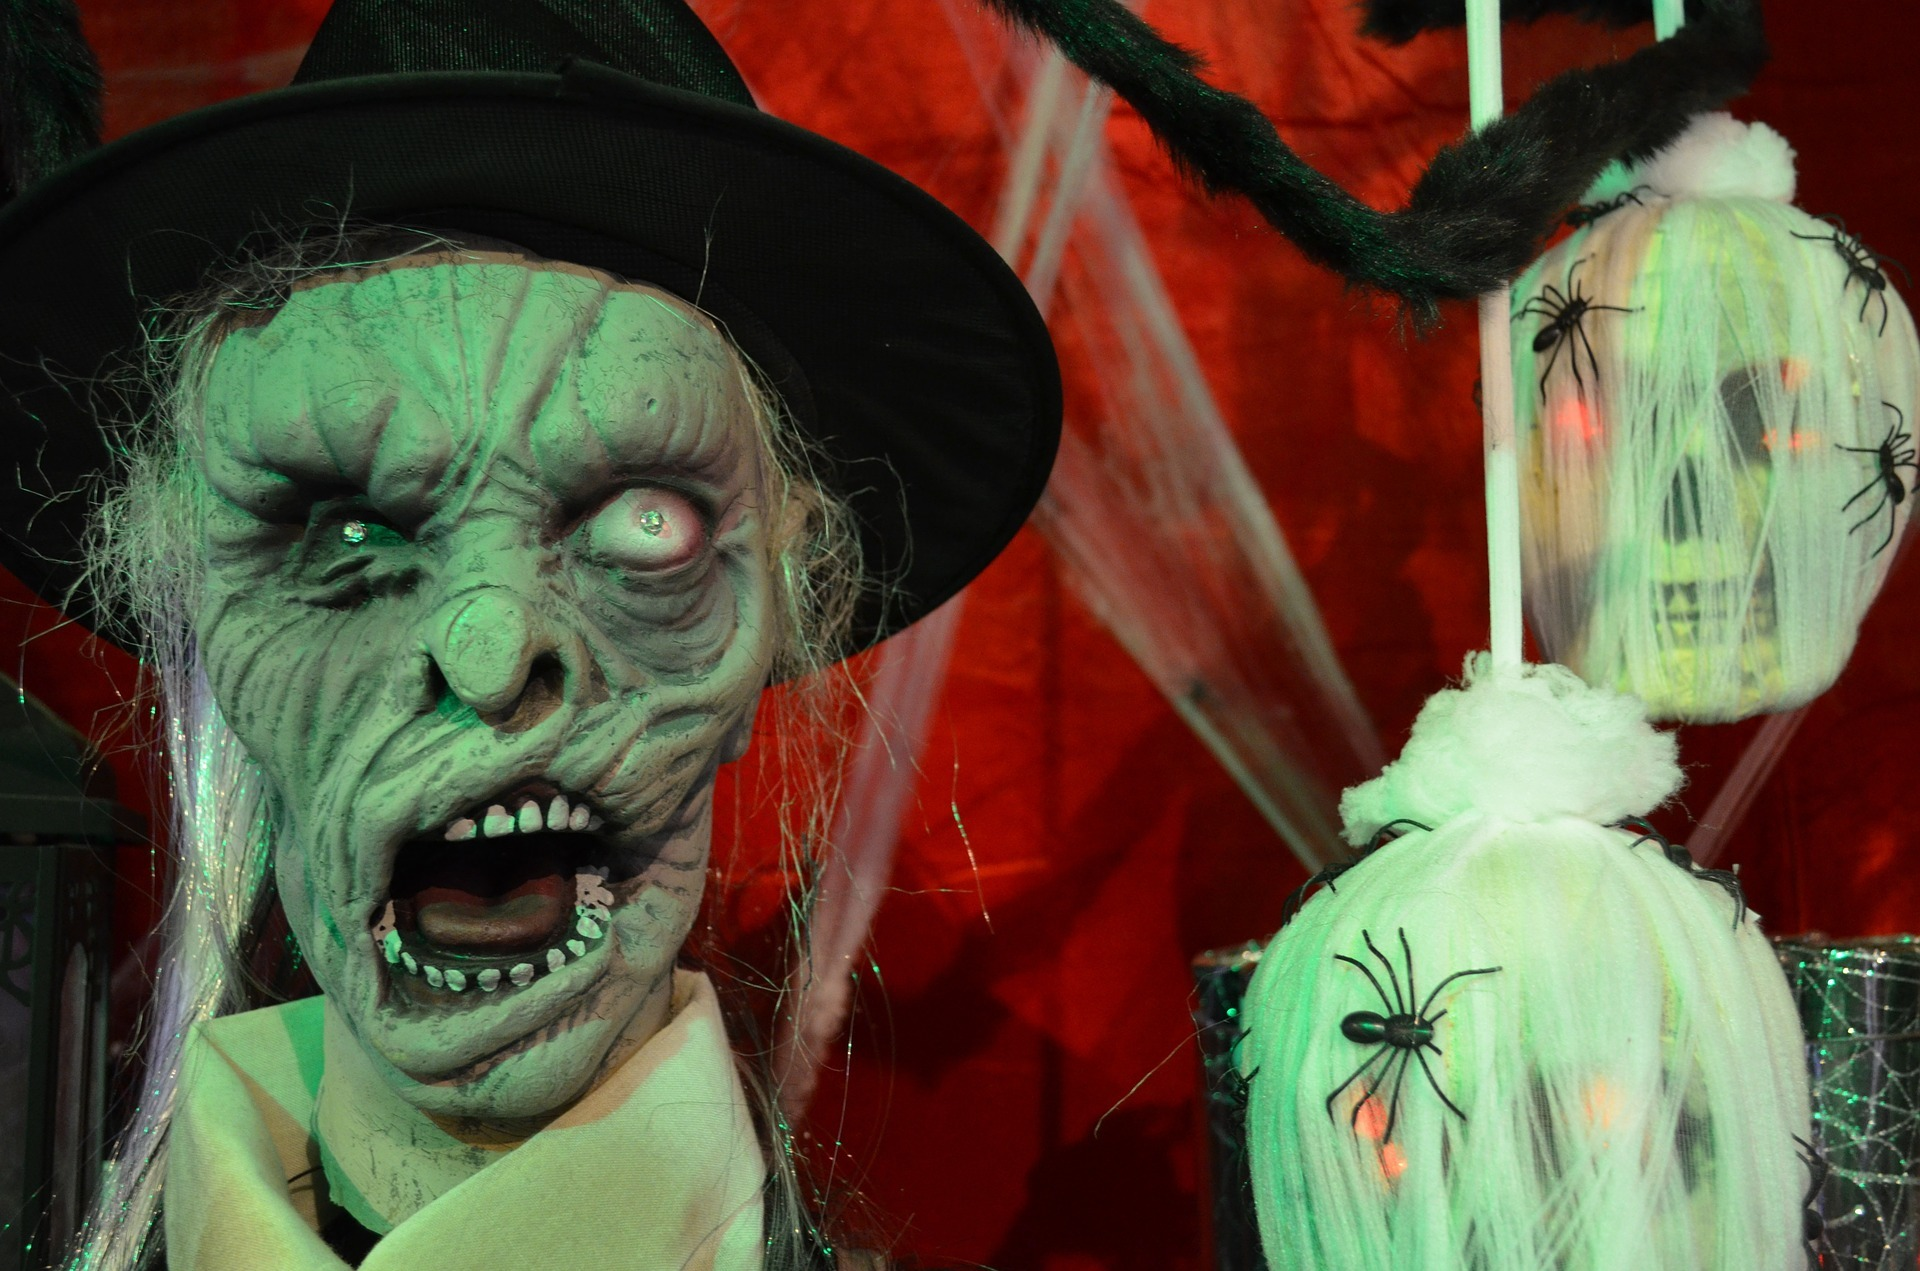 Five American Halloween traditions we'd like to see in London